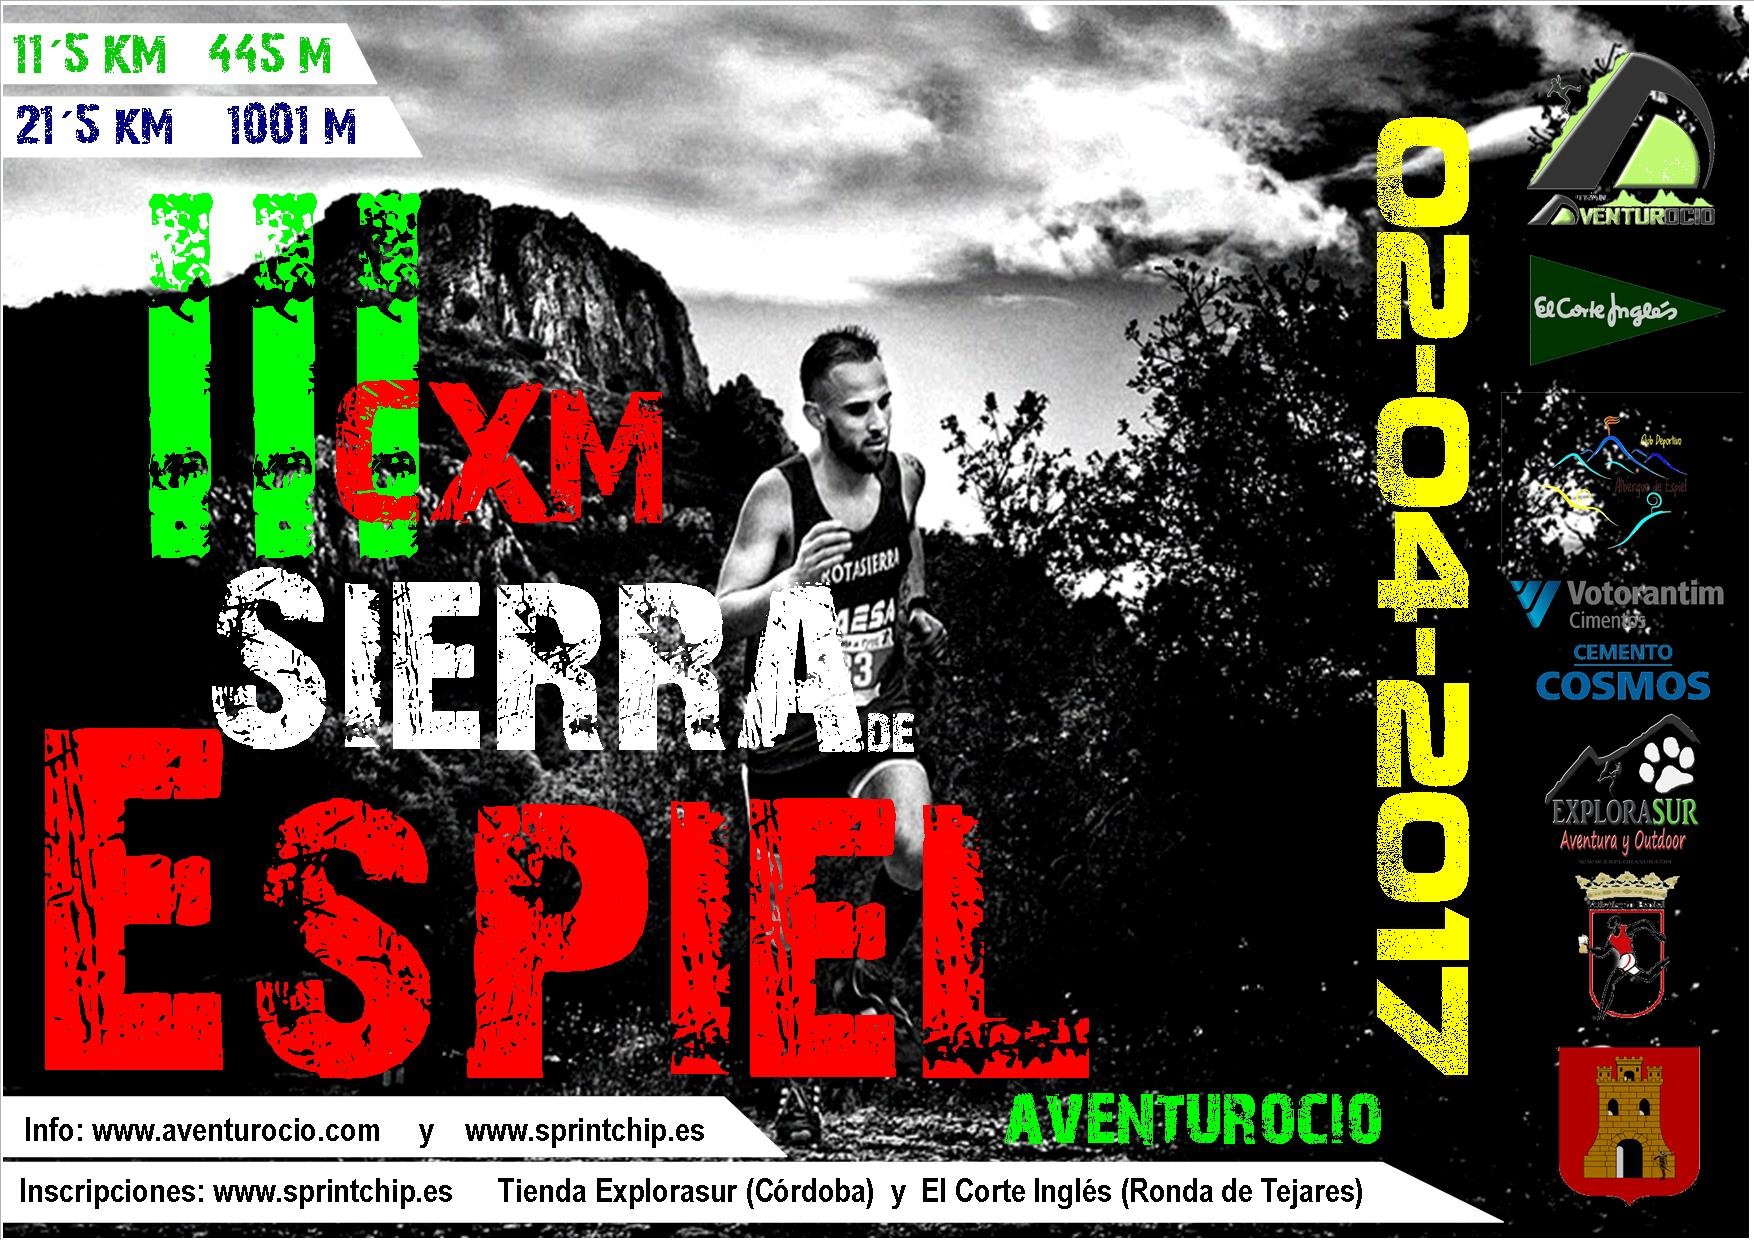 III CXM SIERRA DE ESPIEL - TRAIL LARGO - Sprint Chip